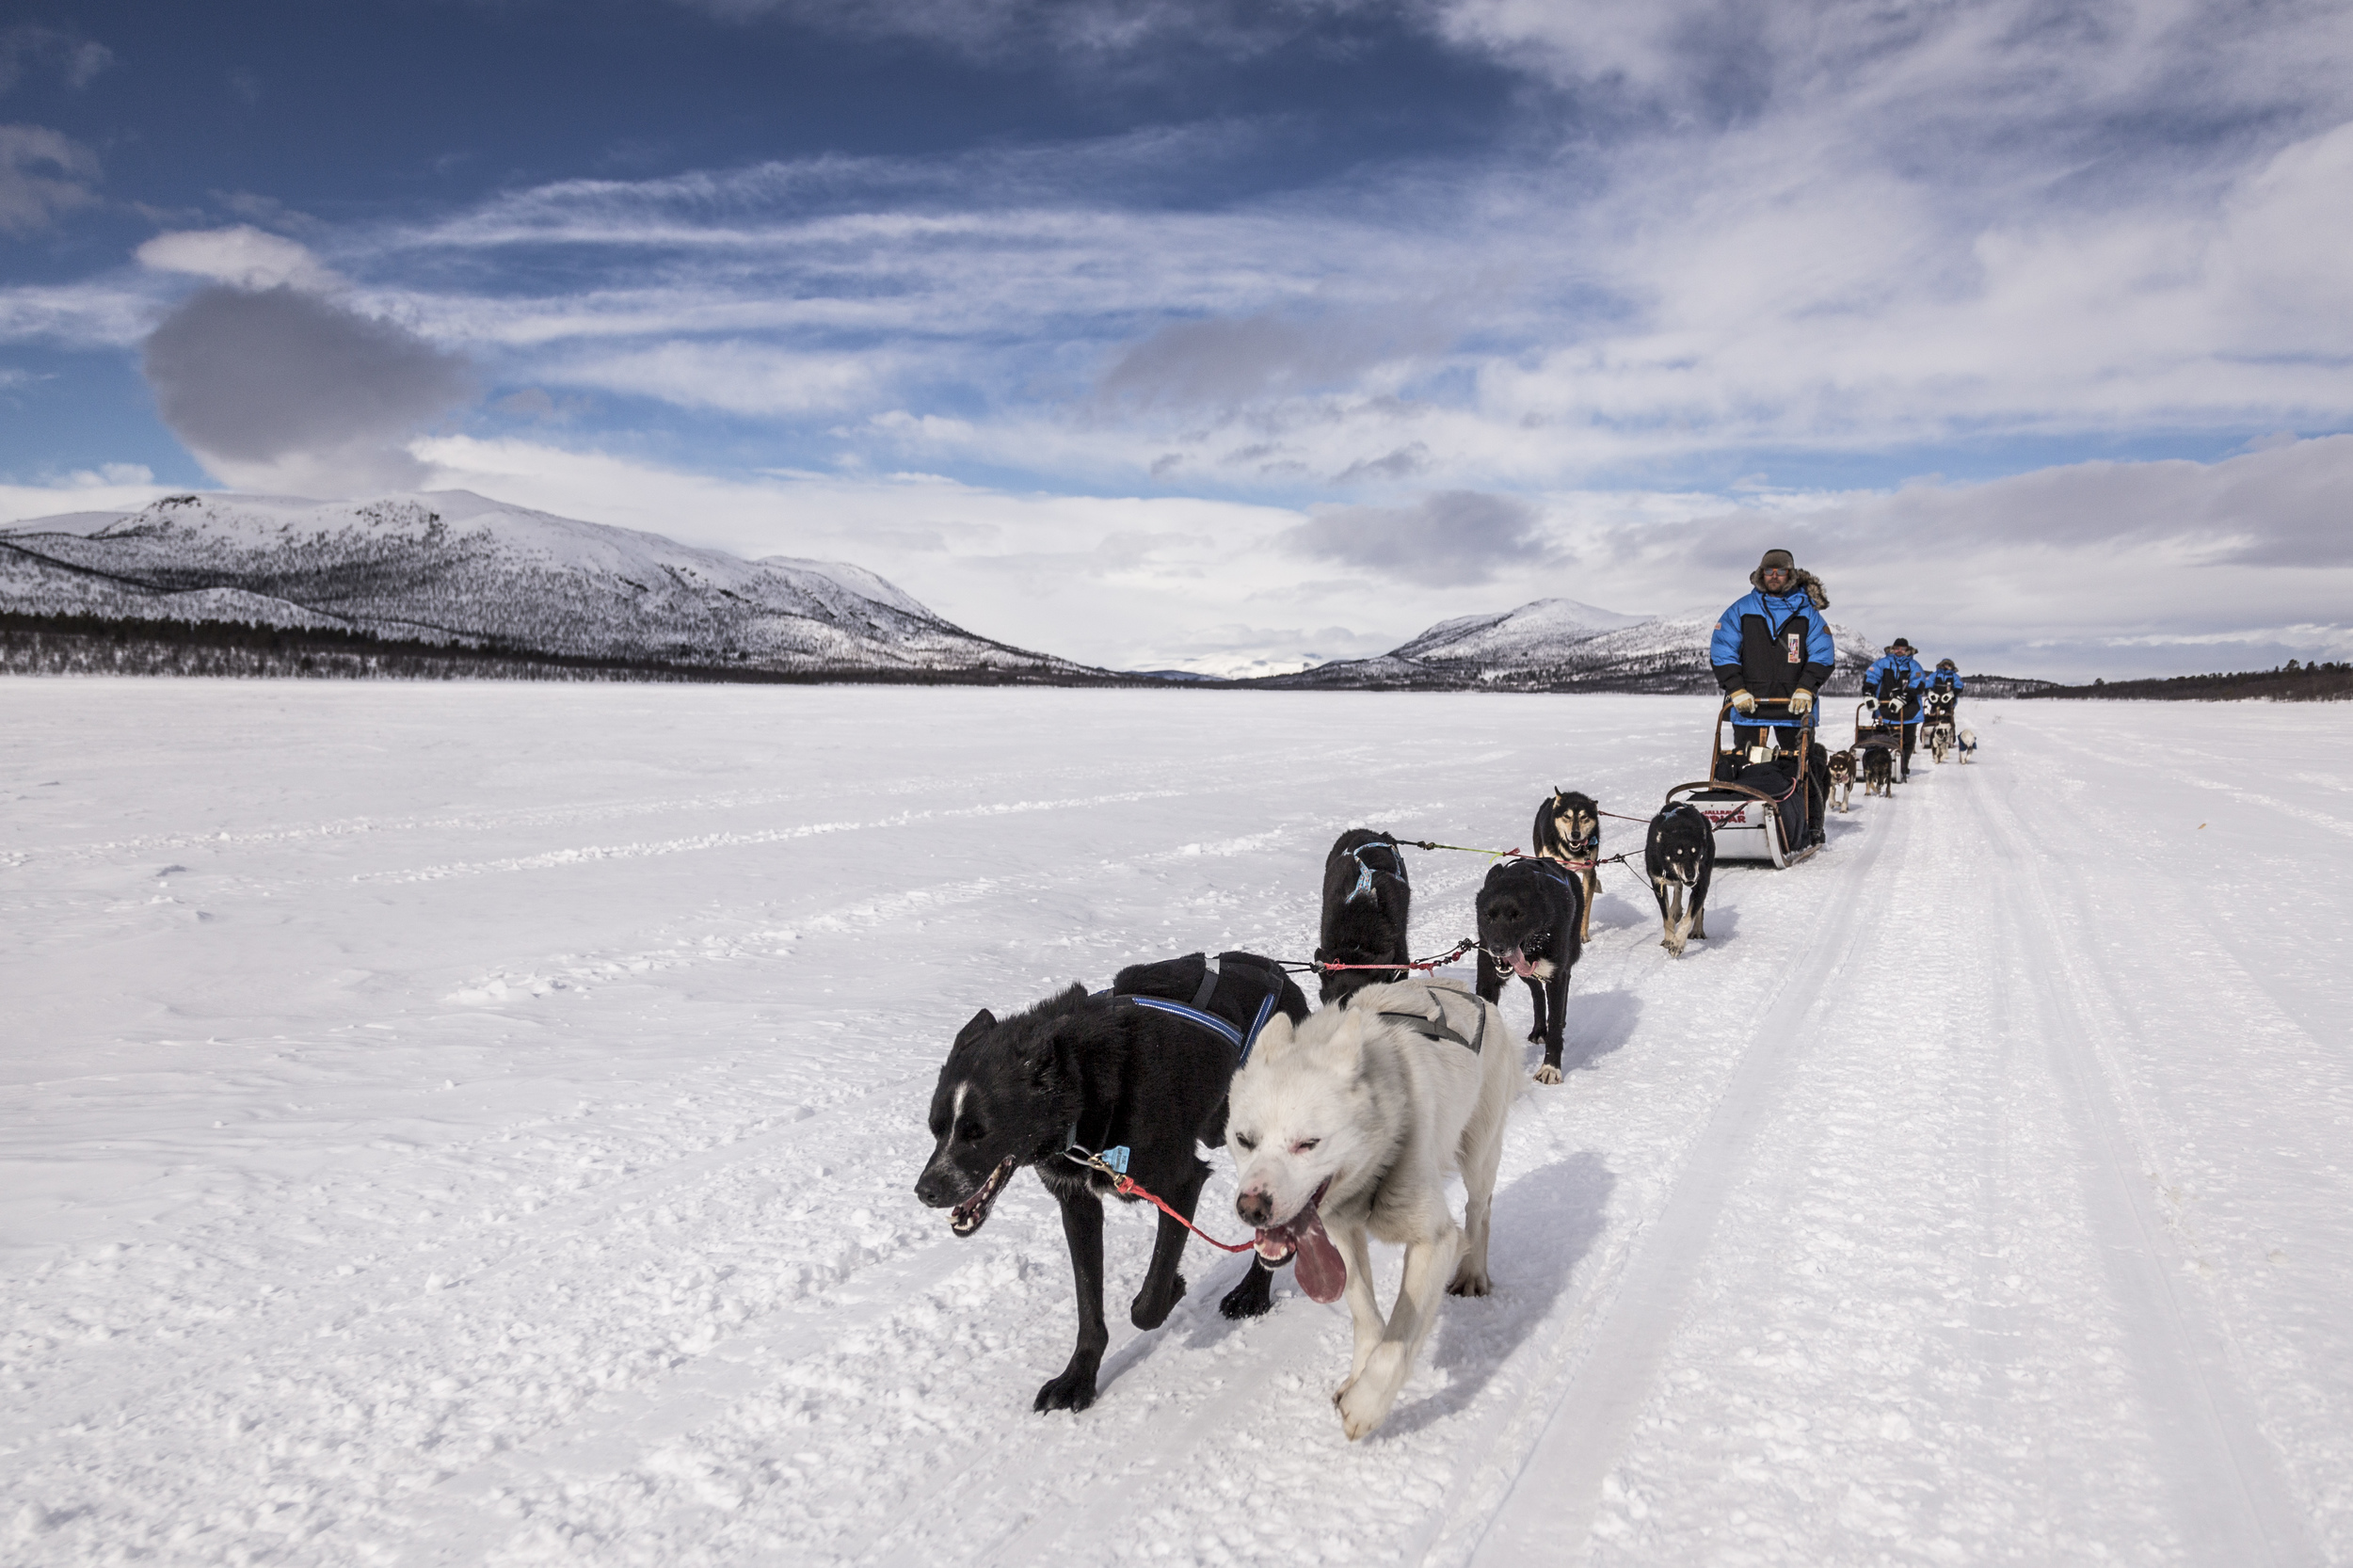 The flat frozen lakes, although windy, provide an opportunity for dogs and sledders both to relax a bit. It's the forests that require full concentration.(Photo by Håkan Wike for Fjällräven International. All rights reserved.)